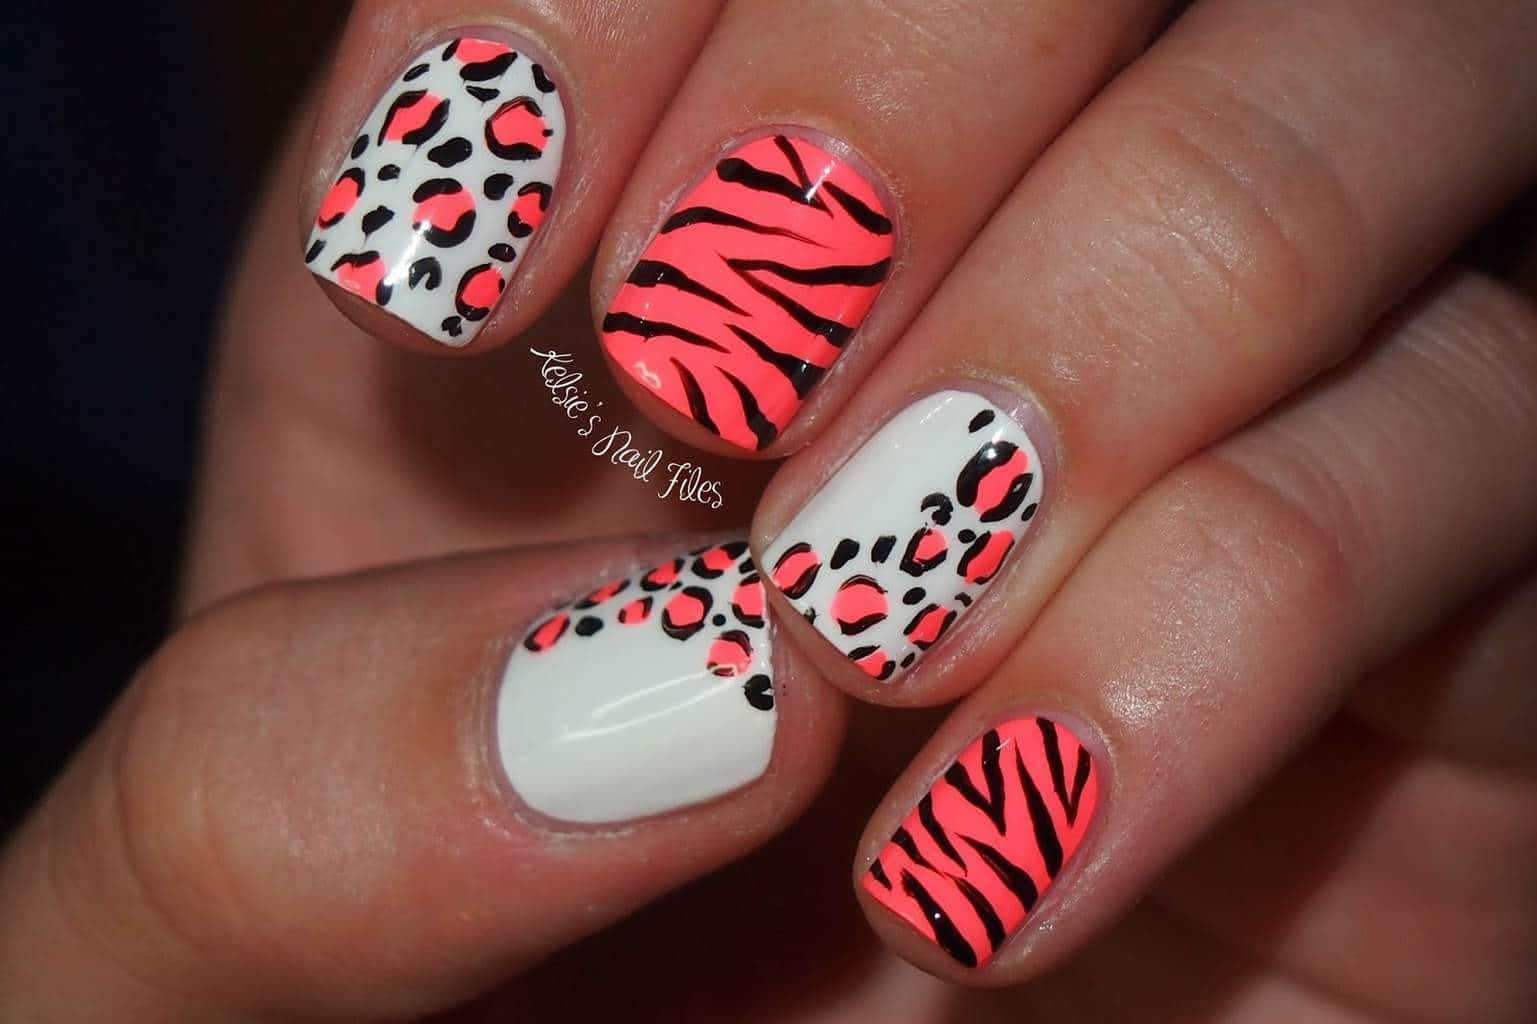 10 Unique Cheetah and Leopard Nail Designs to Try